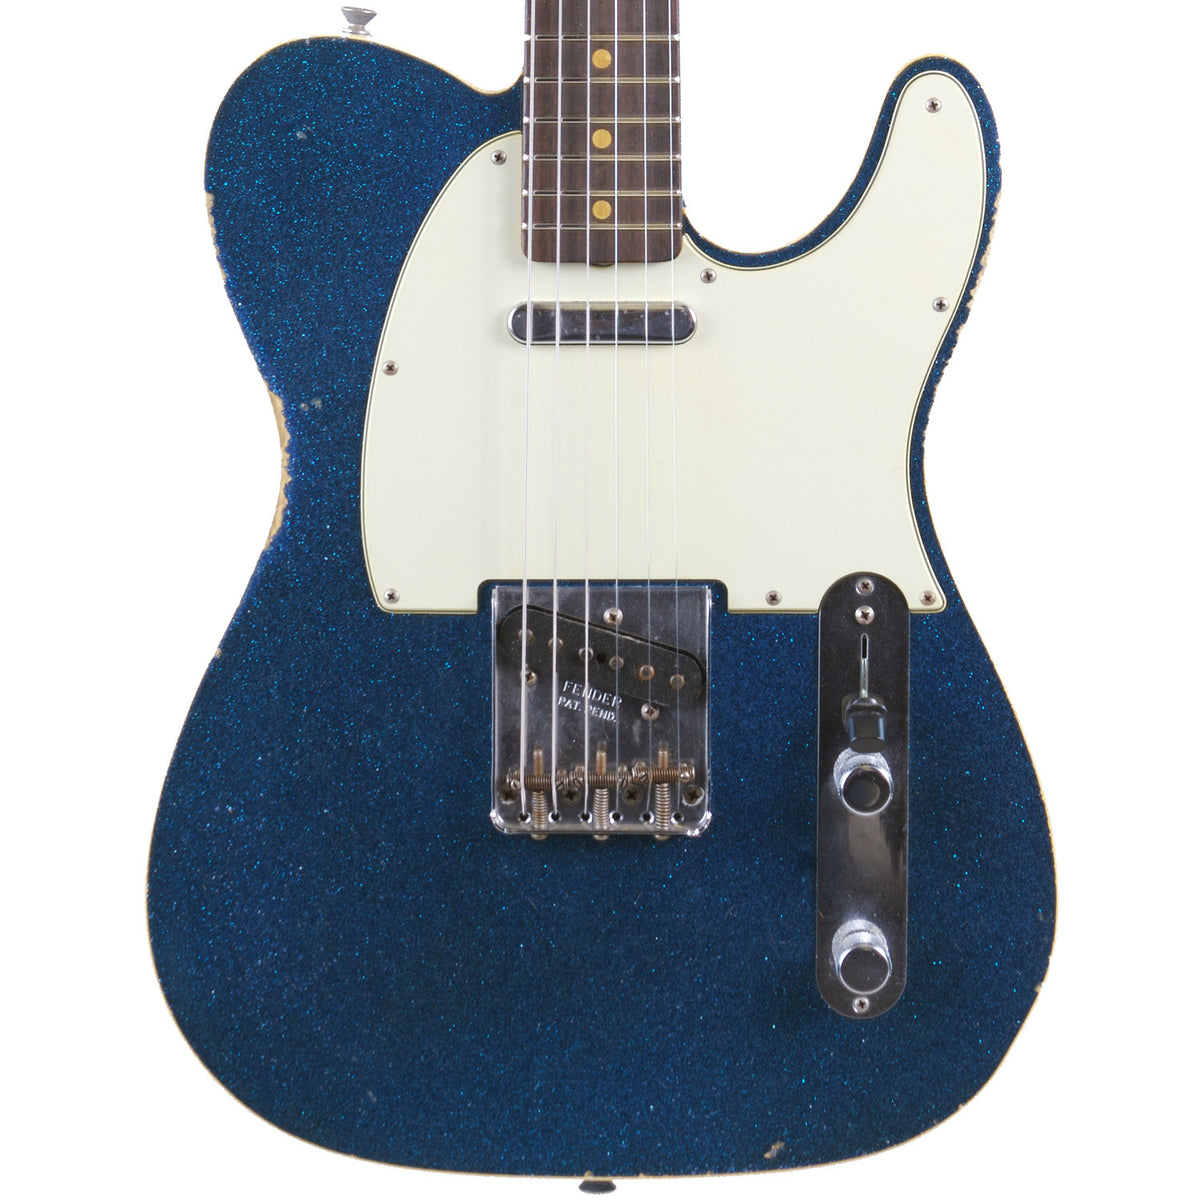 Fender Custom Shop Blue Sparkle '60 Telecaster Custom Relic - Garrett Park Guitars  - 2